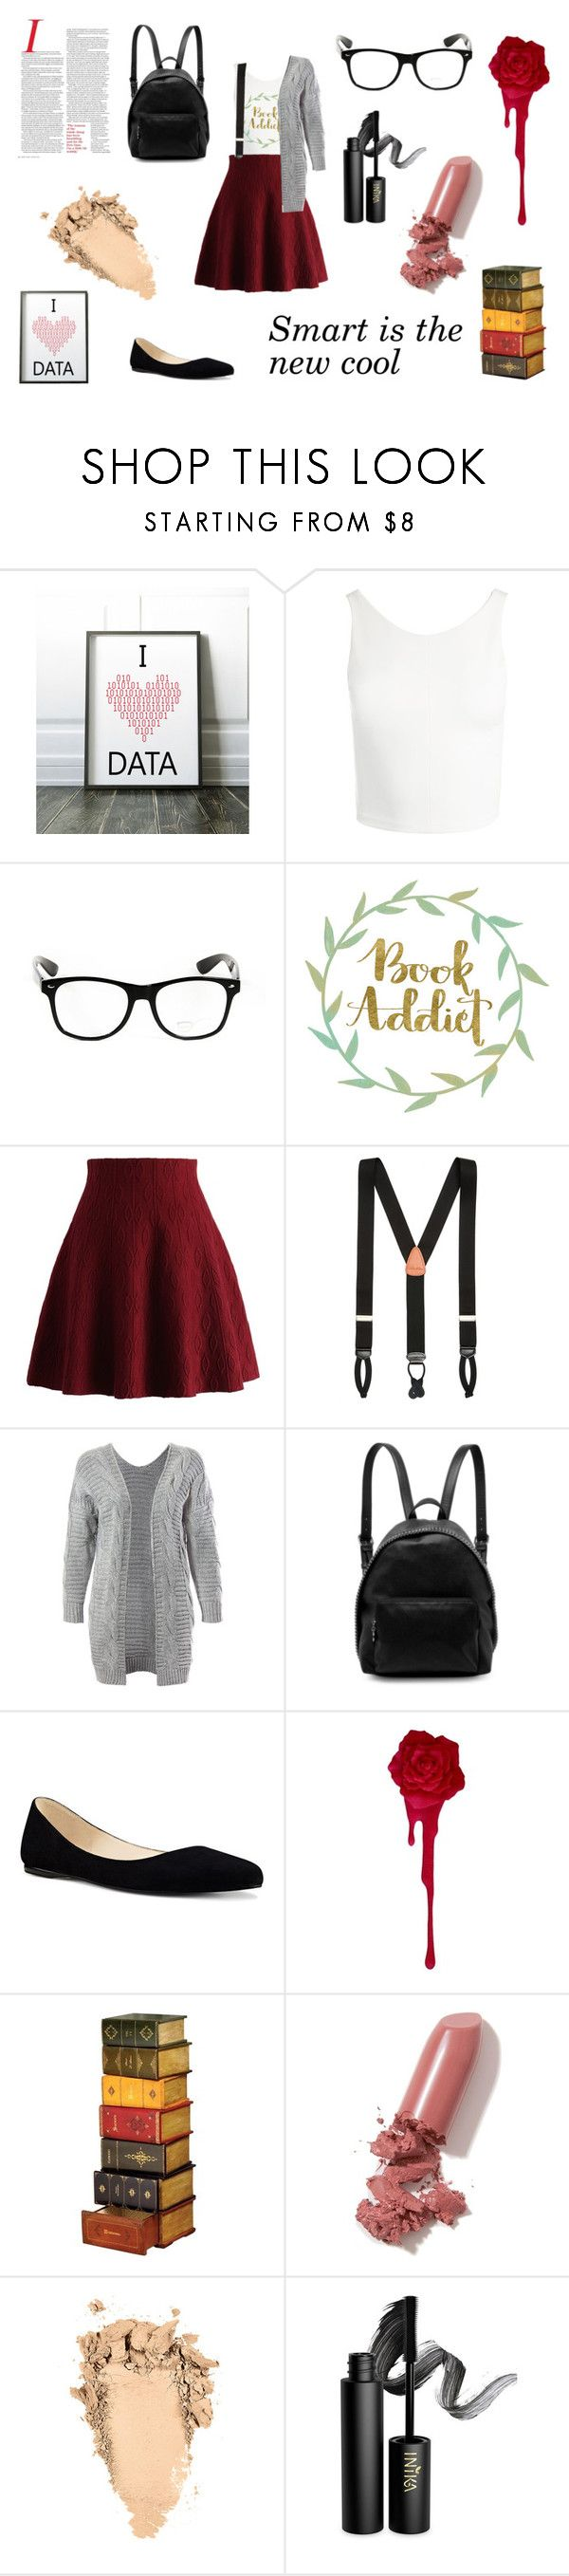 """Nerd chic"" by hannah-cat ❤ liked on Polyvore featuring Sans Souci, Chicwish, Brooks Brothers, STELLA McCARTNEY, Nine West, LAQA & Co. and INIKA"